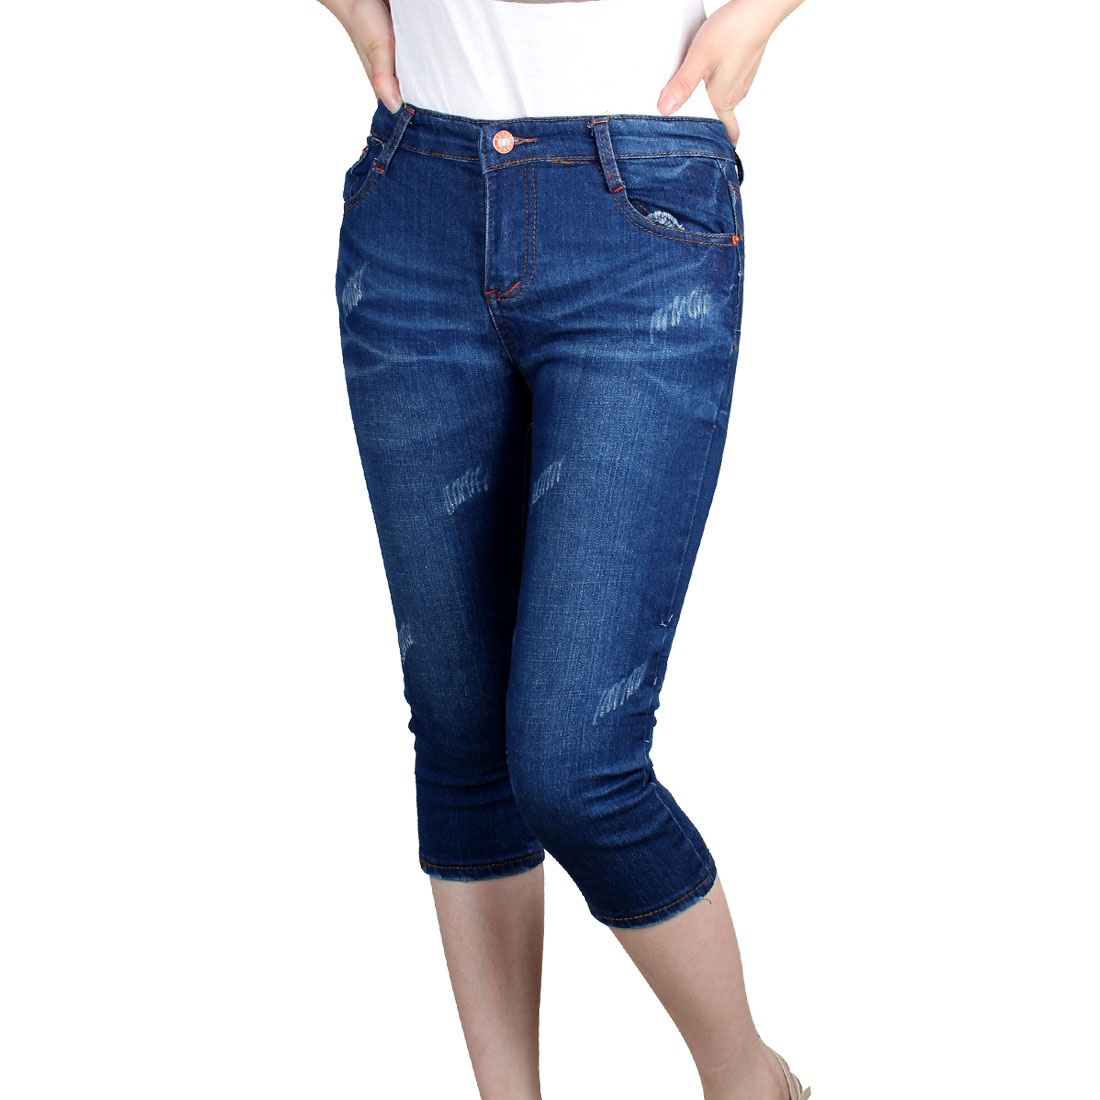 Low Waist Belt Loop Solid Blue Capris Jeans S for Ladies